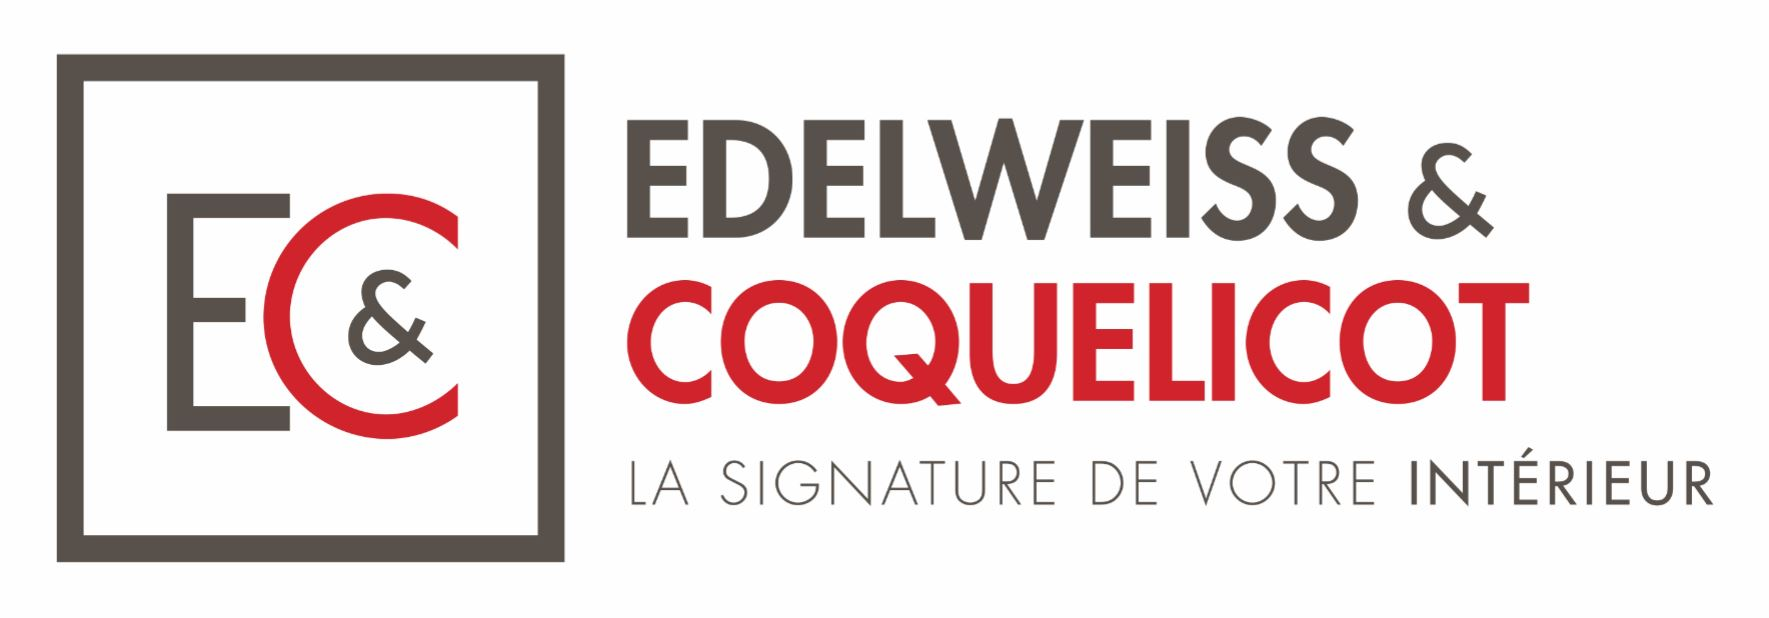 EC Edelweiss & Coquelicot